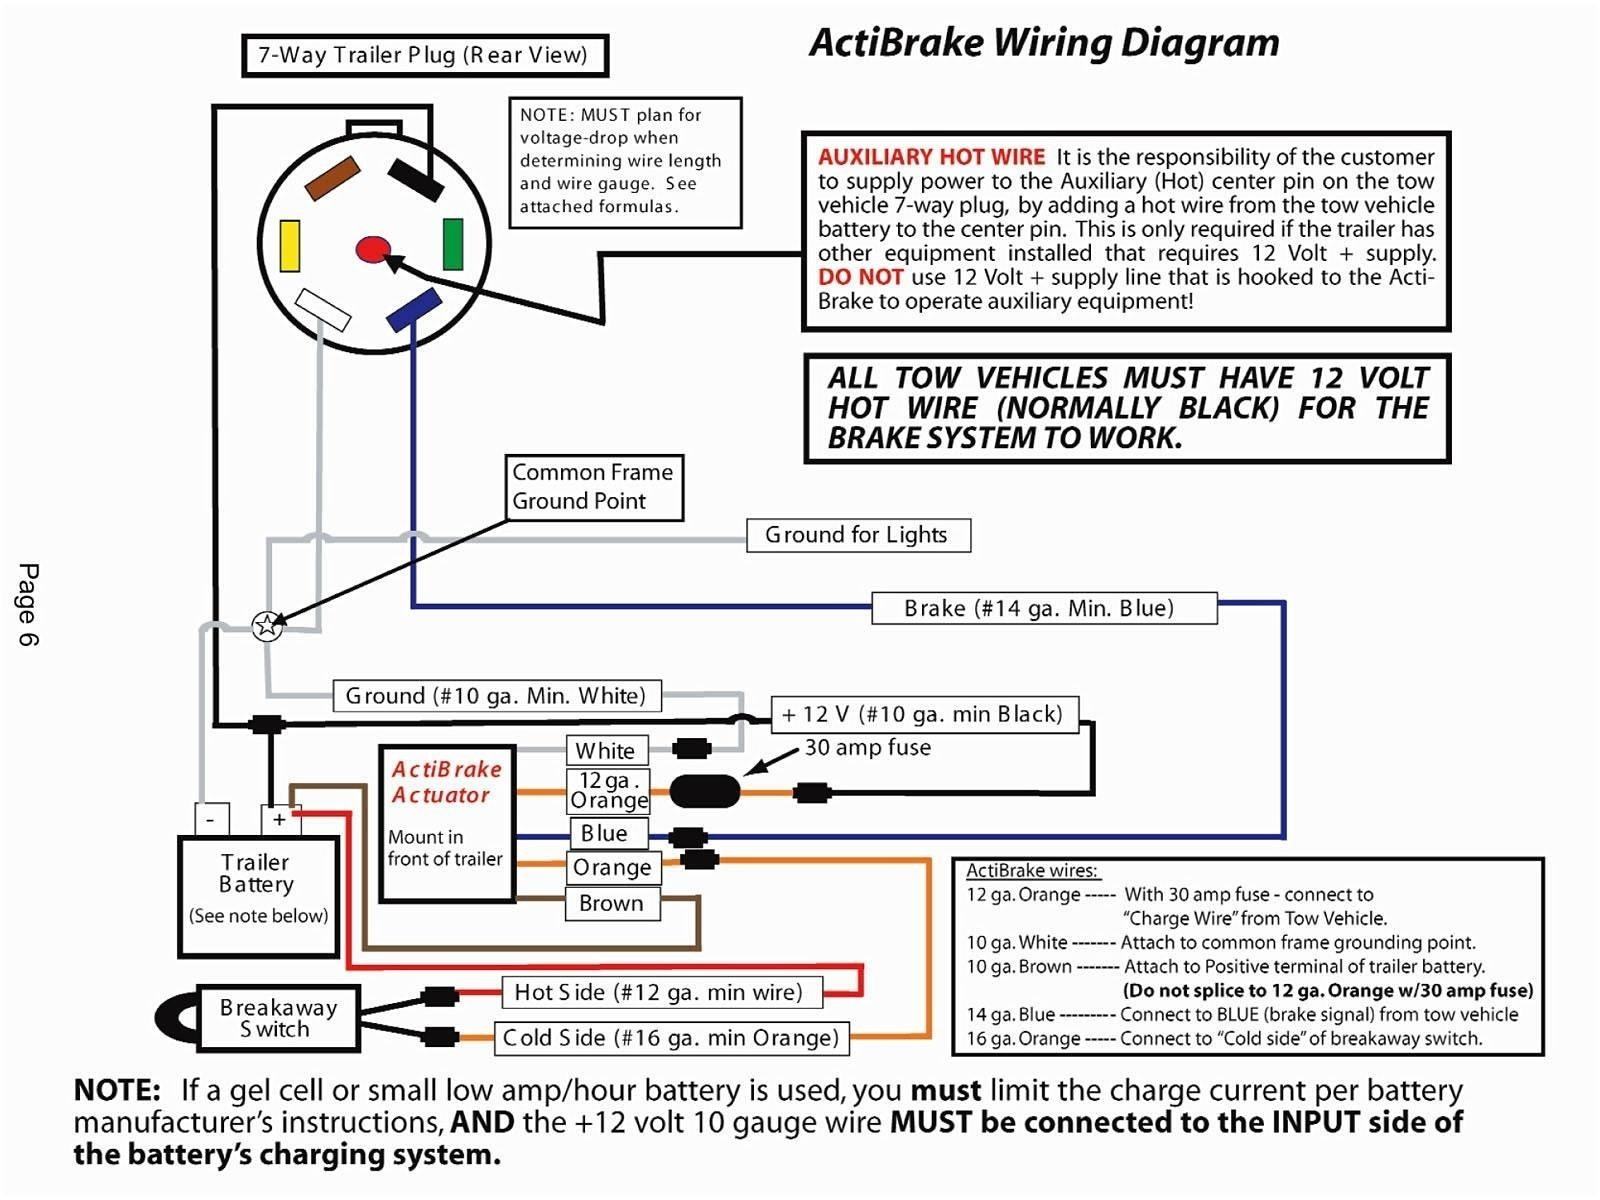 Automotive Wiring Diagram Download Libraries In Cars